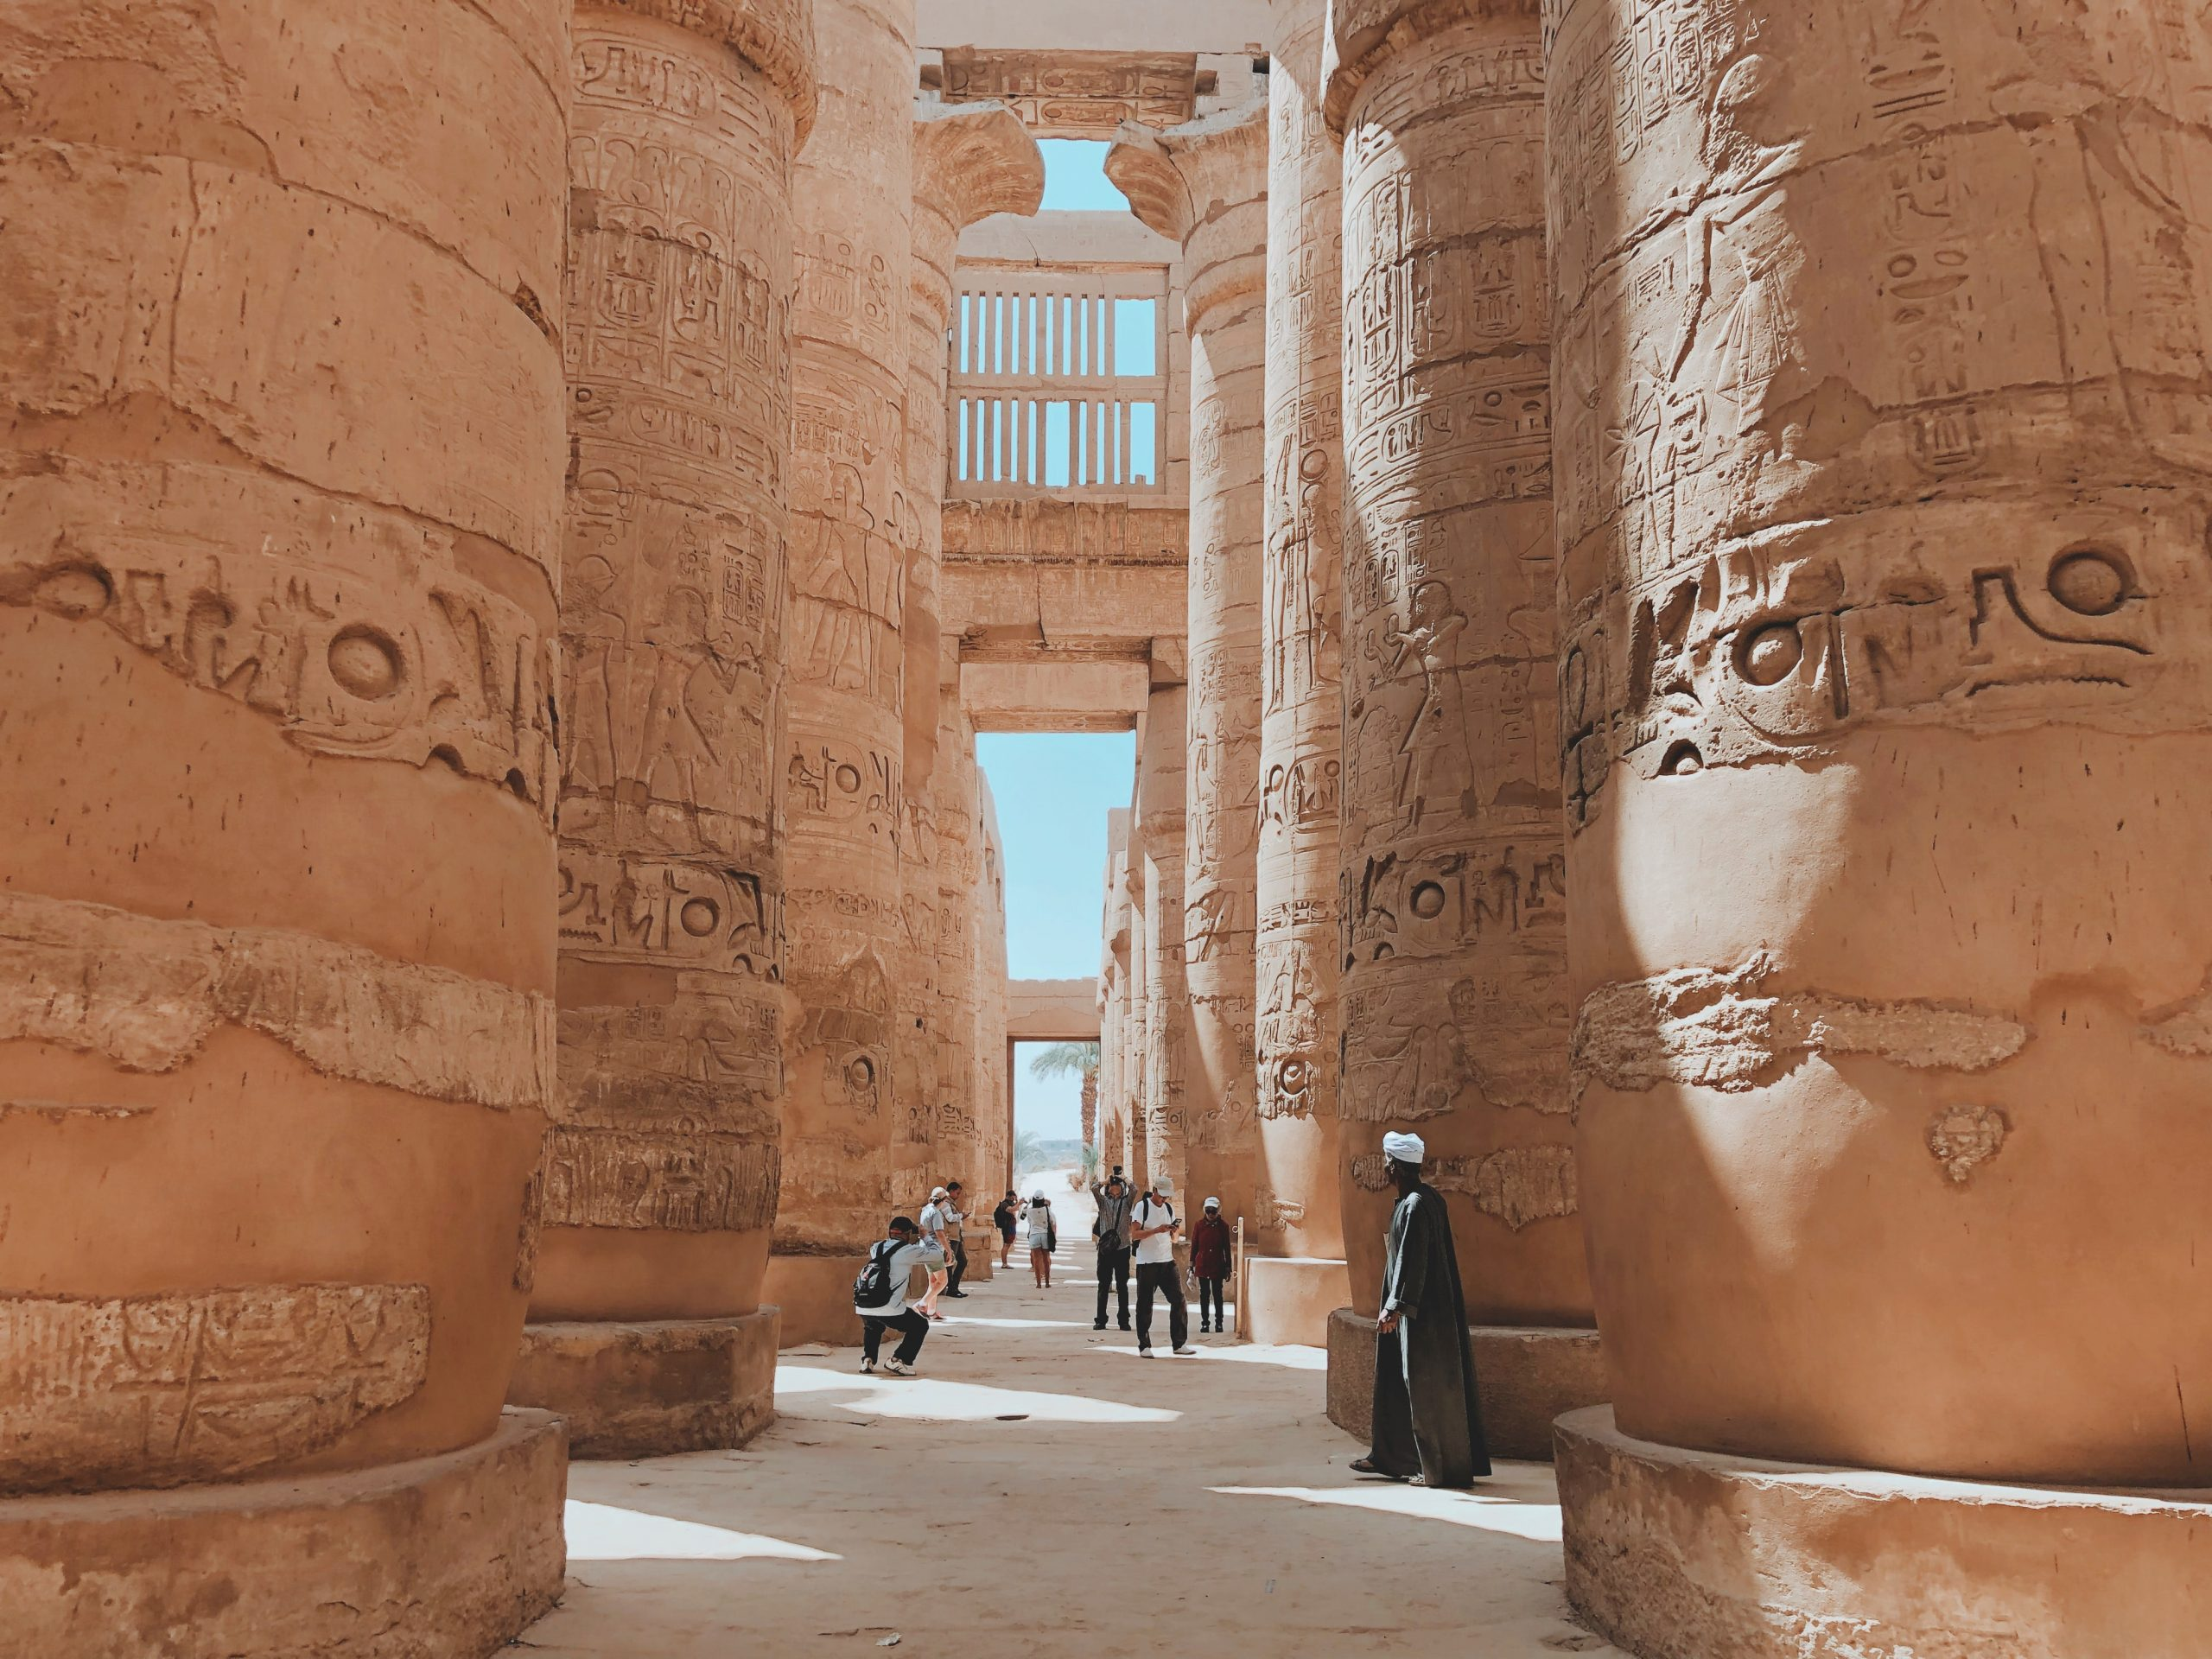 Women traveling solo in Egypt tours